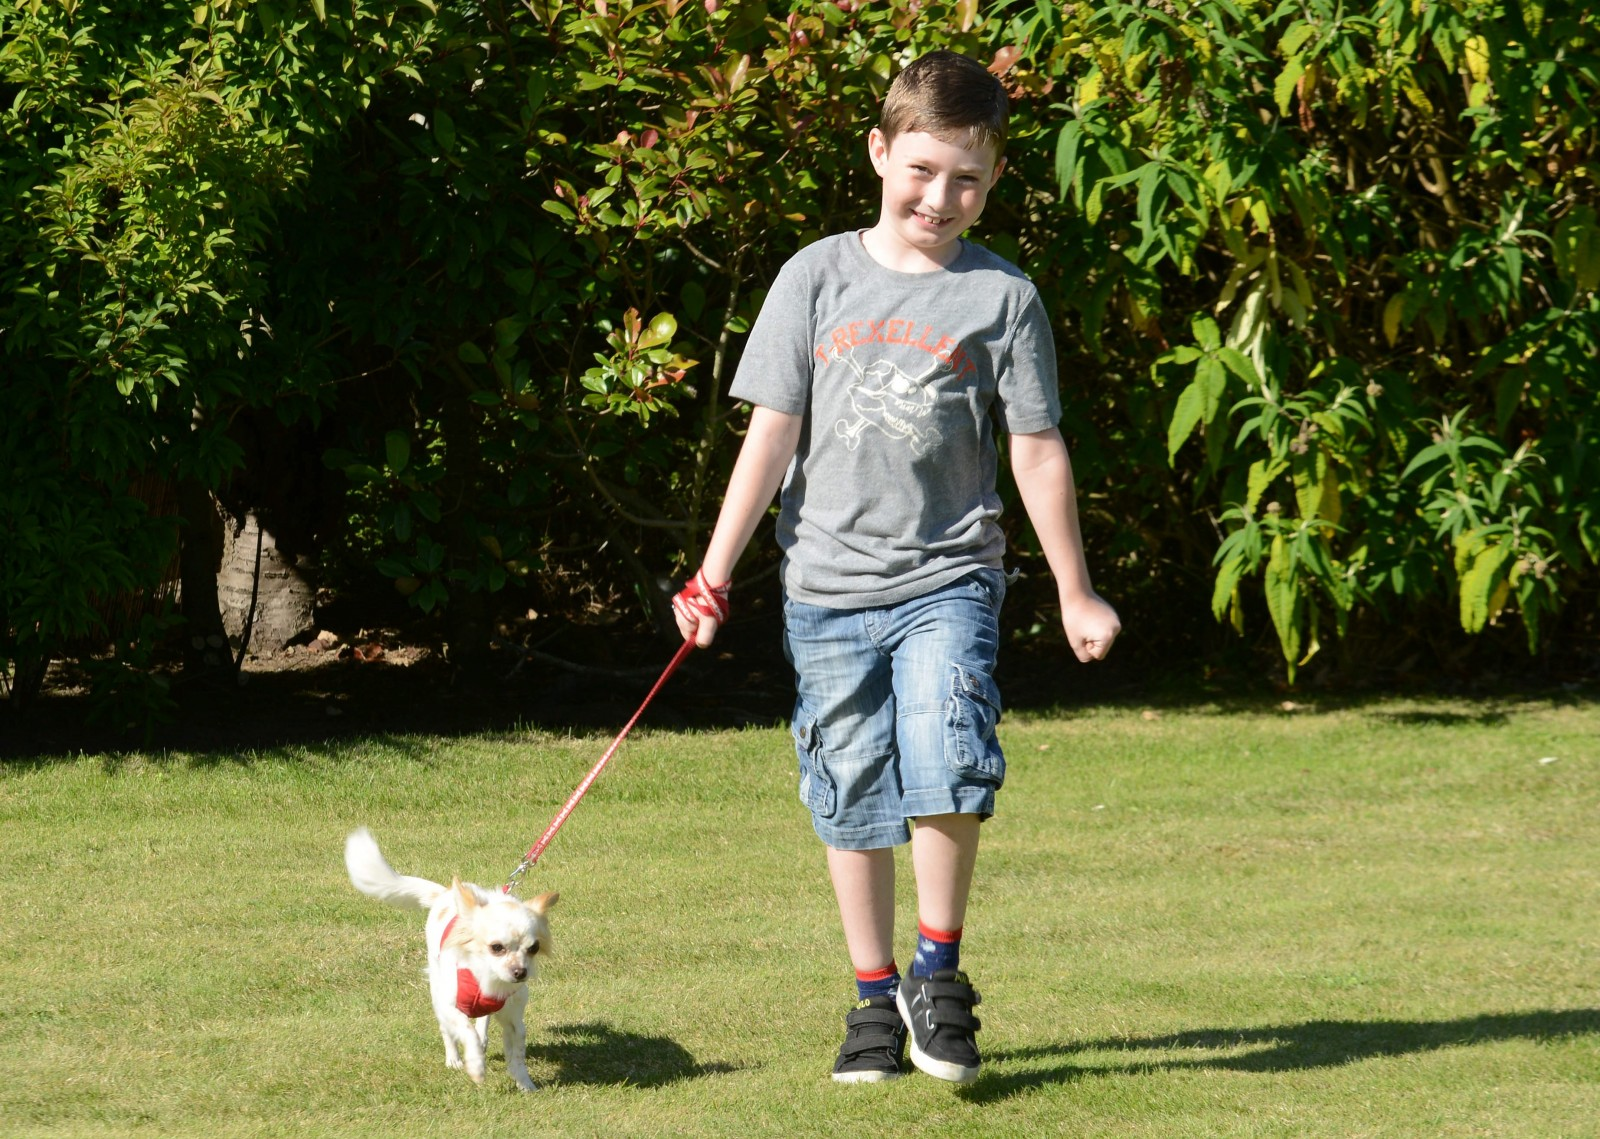 Within weeks of becoming best friends this disabled boy and his lame puppy both started to WALK